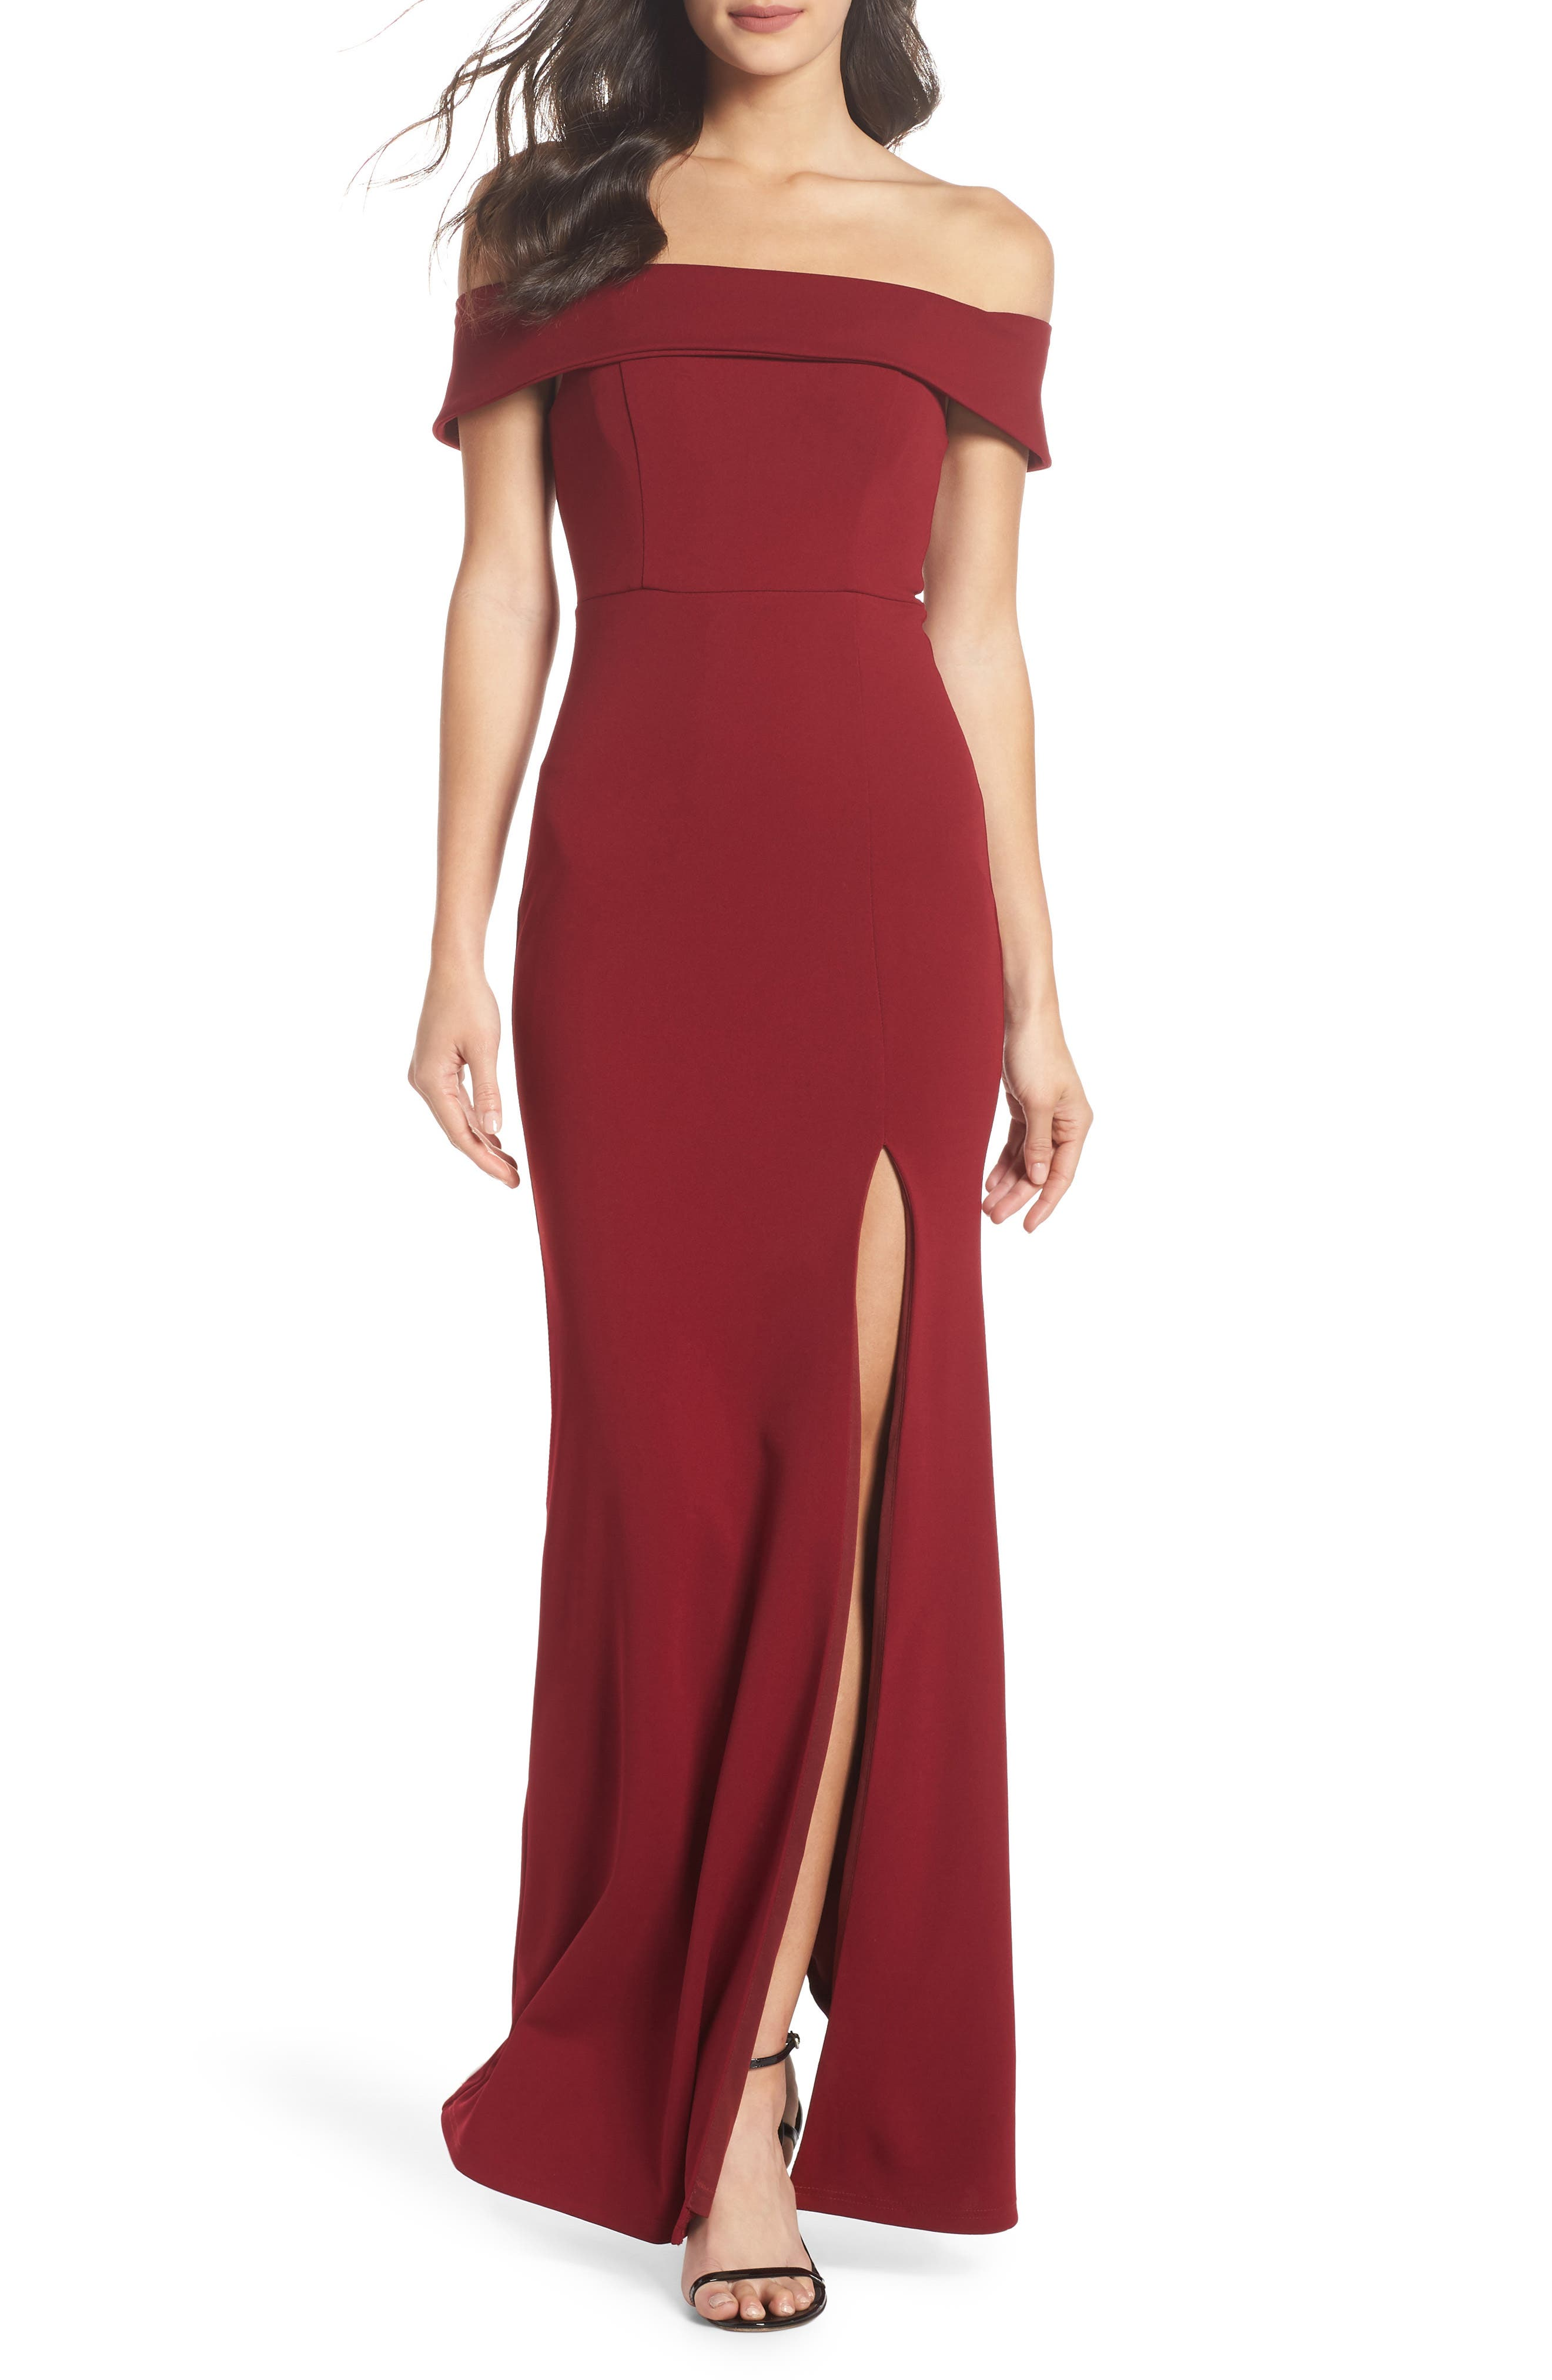 LULUS,                             Off the Shoulder Mermaid Gown,                             Main thumbnail 1, color,                             931